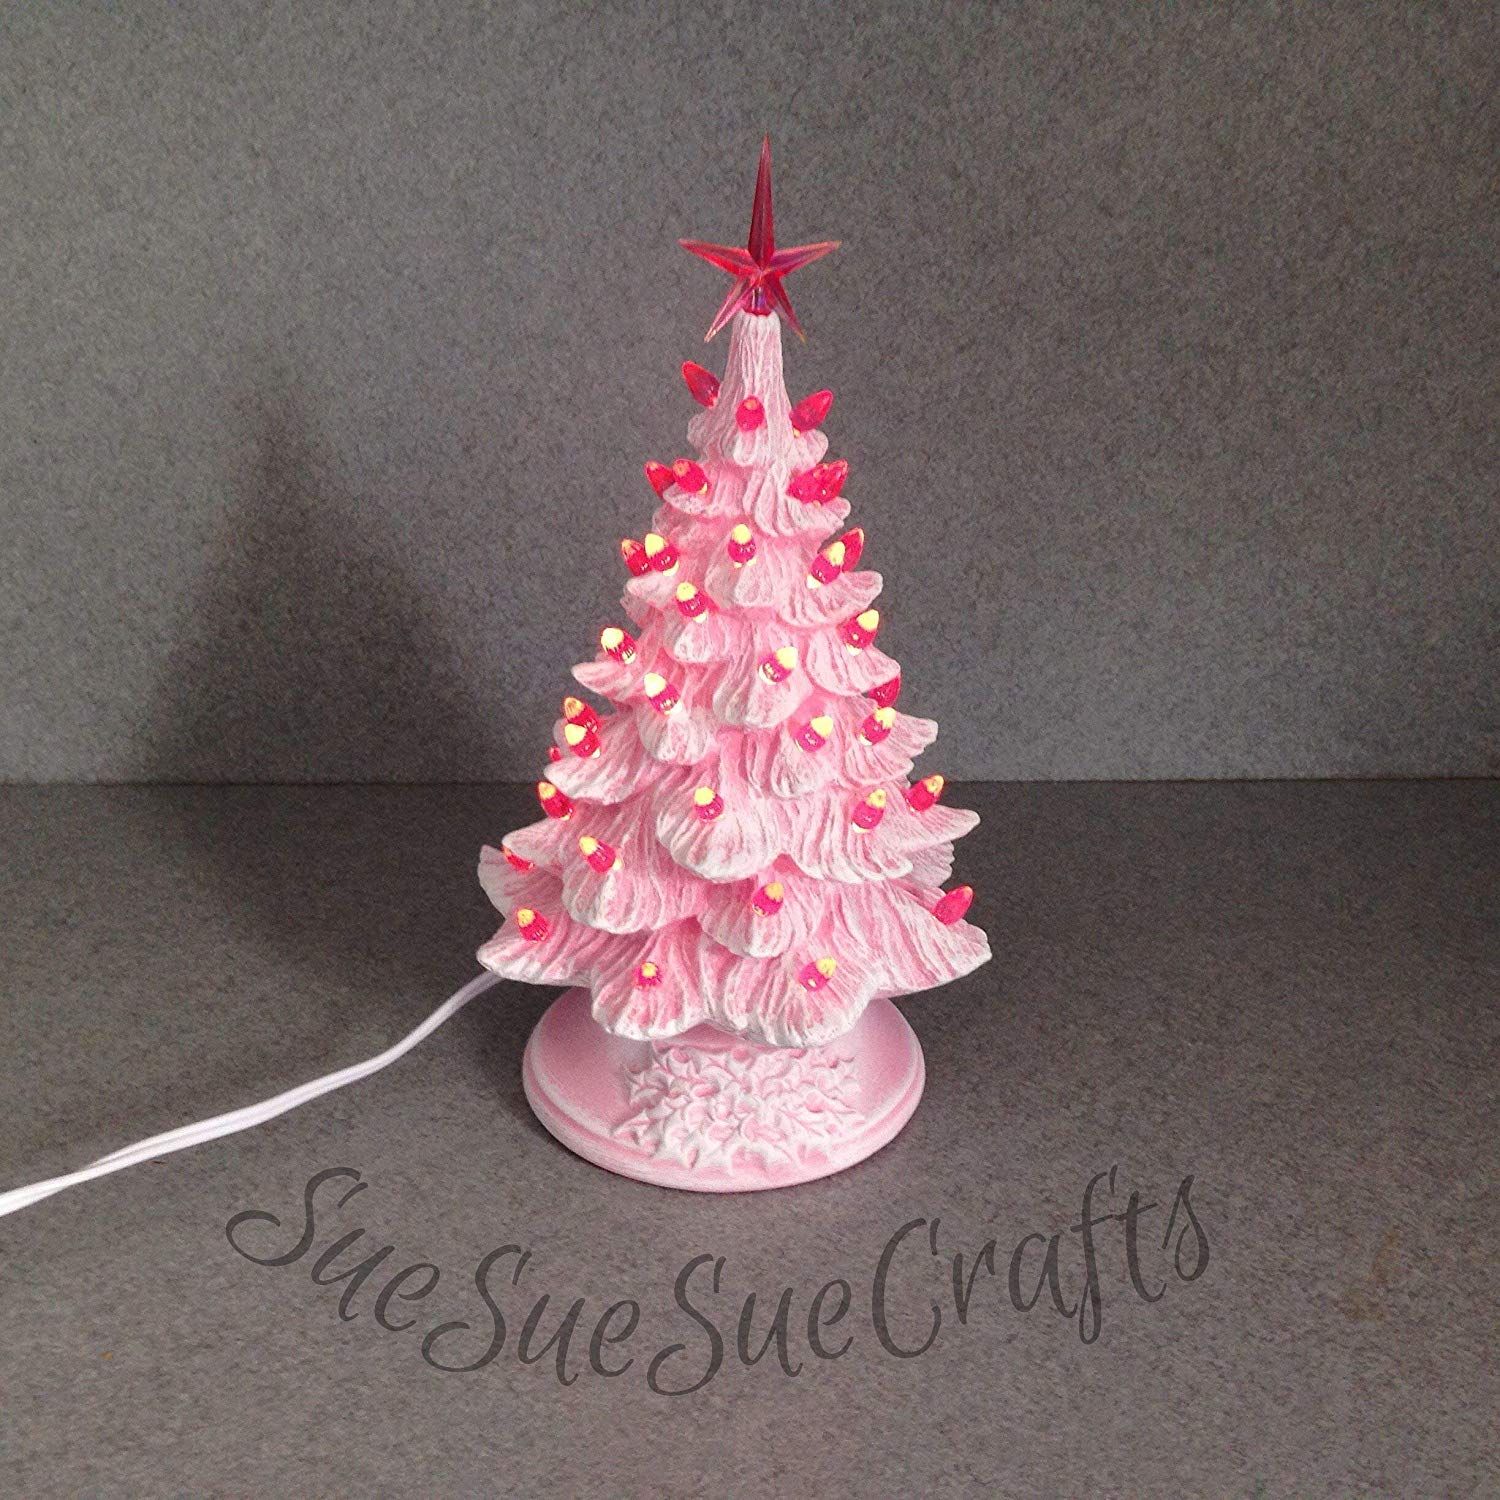 Get Quotations Medium Size Ceramic Pink Dry Brushed Lighted Christmas Tree With Small Twist Lights 11